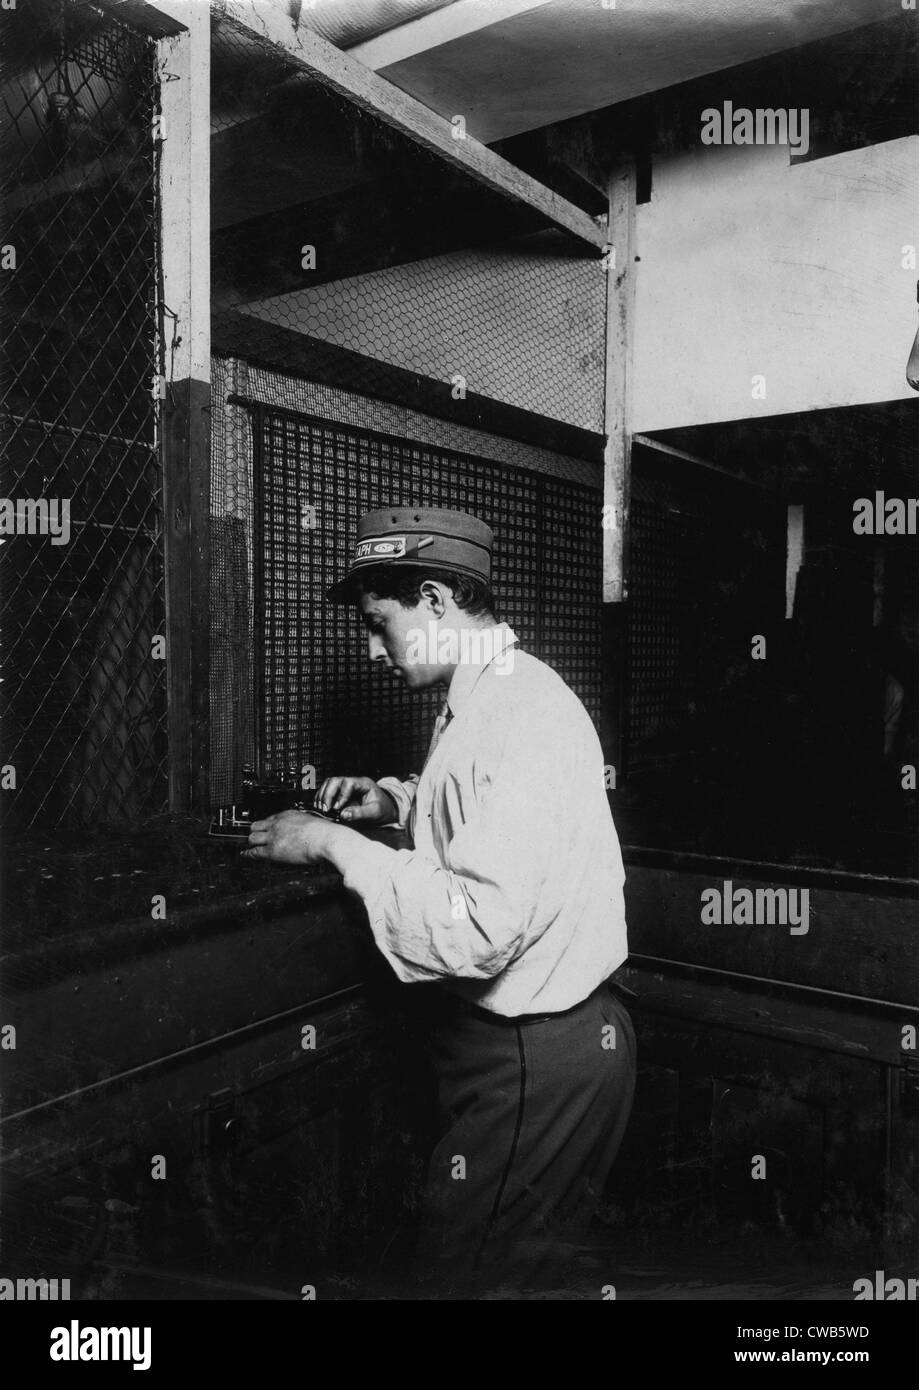 A Postal Telegraph boy learning to send messages during spare moments. Main office, Broadway, New York, photograph - Stock Image